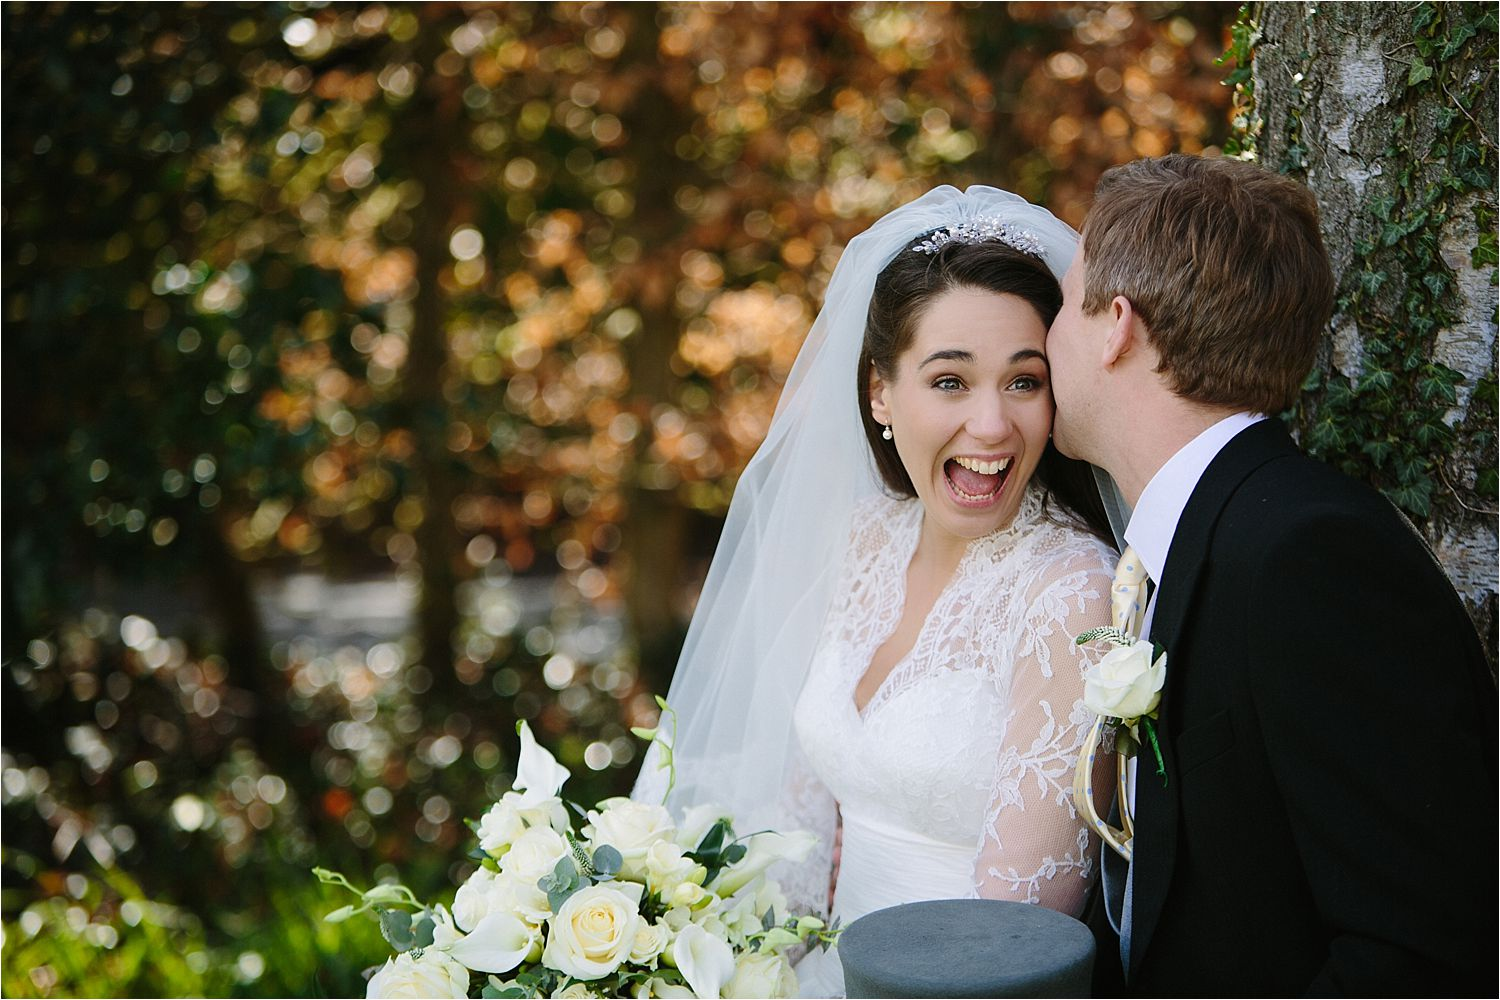 Bride's big smile at Hilltop Country House wedding reception, Cheshire